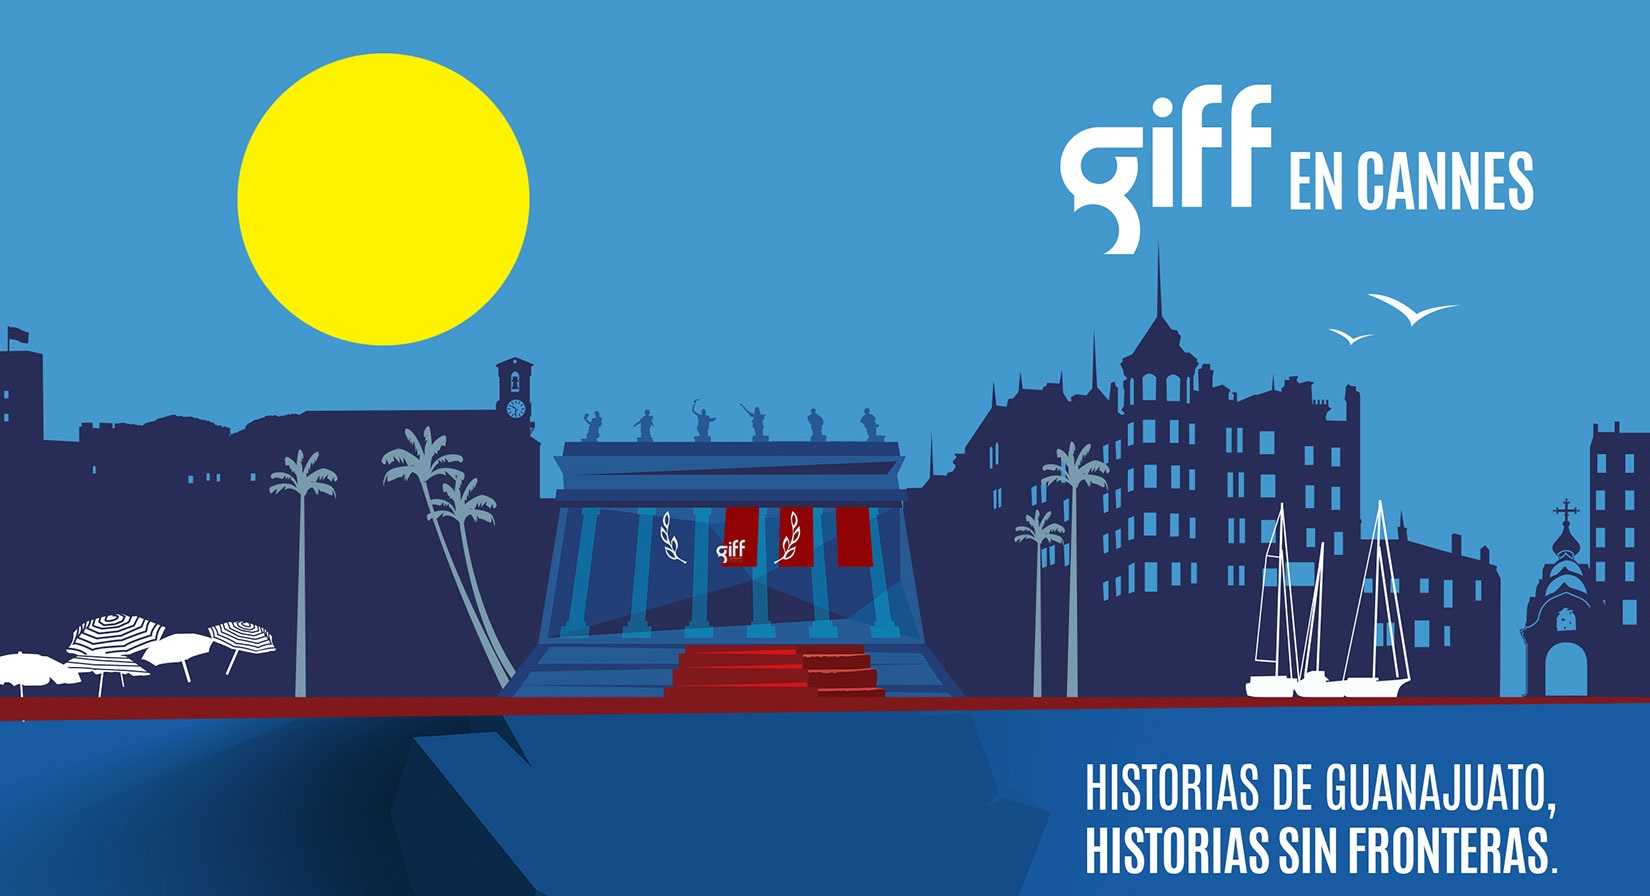 giff cannes 2017